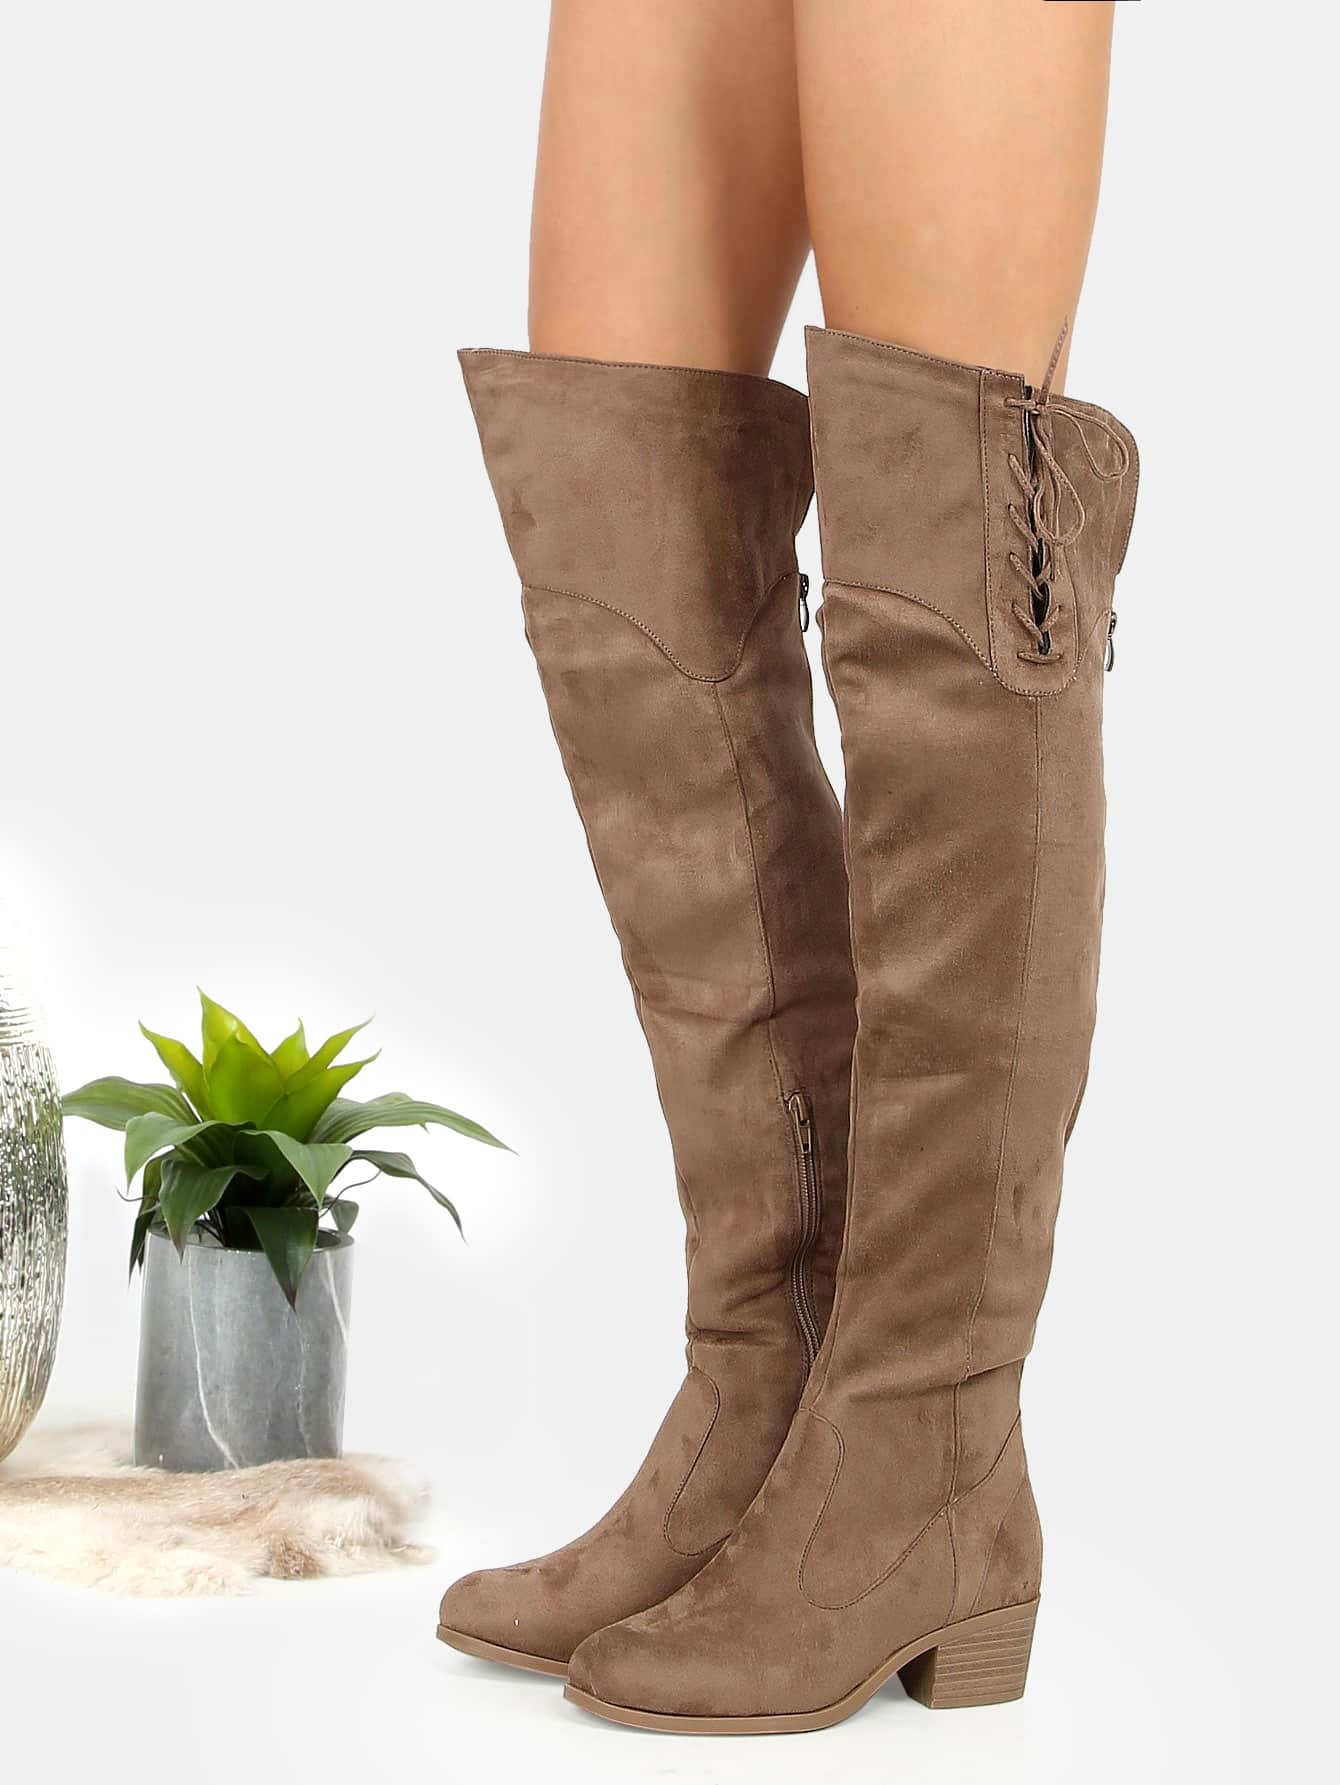 Faux Suede Over Knee Lace Boots TAUPE -SheIn(Sheinside)